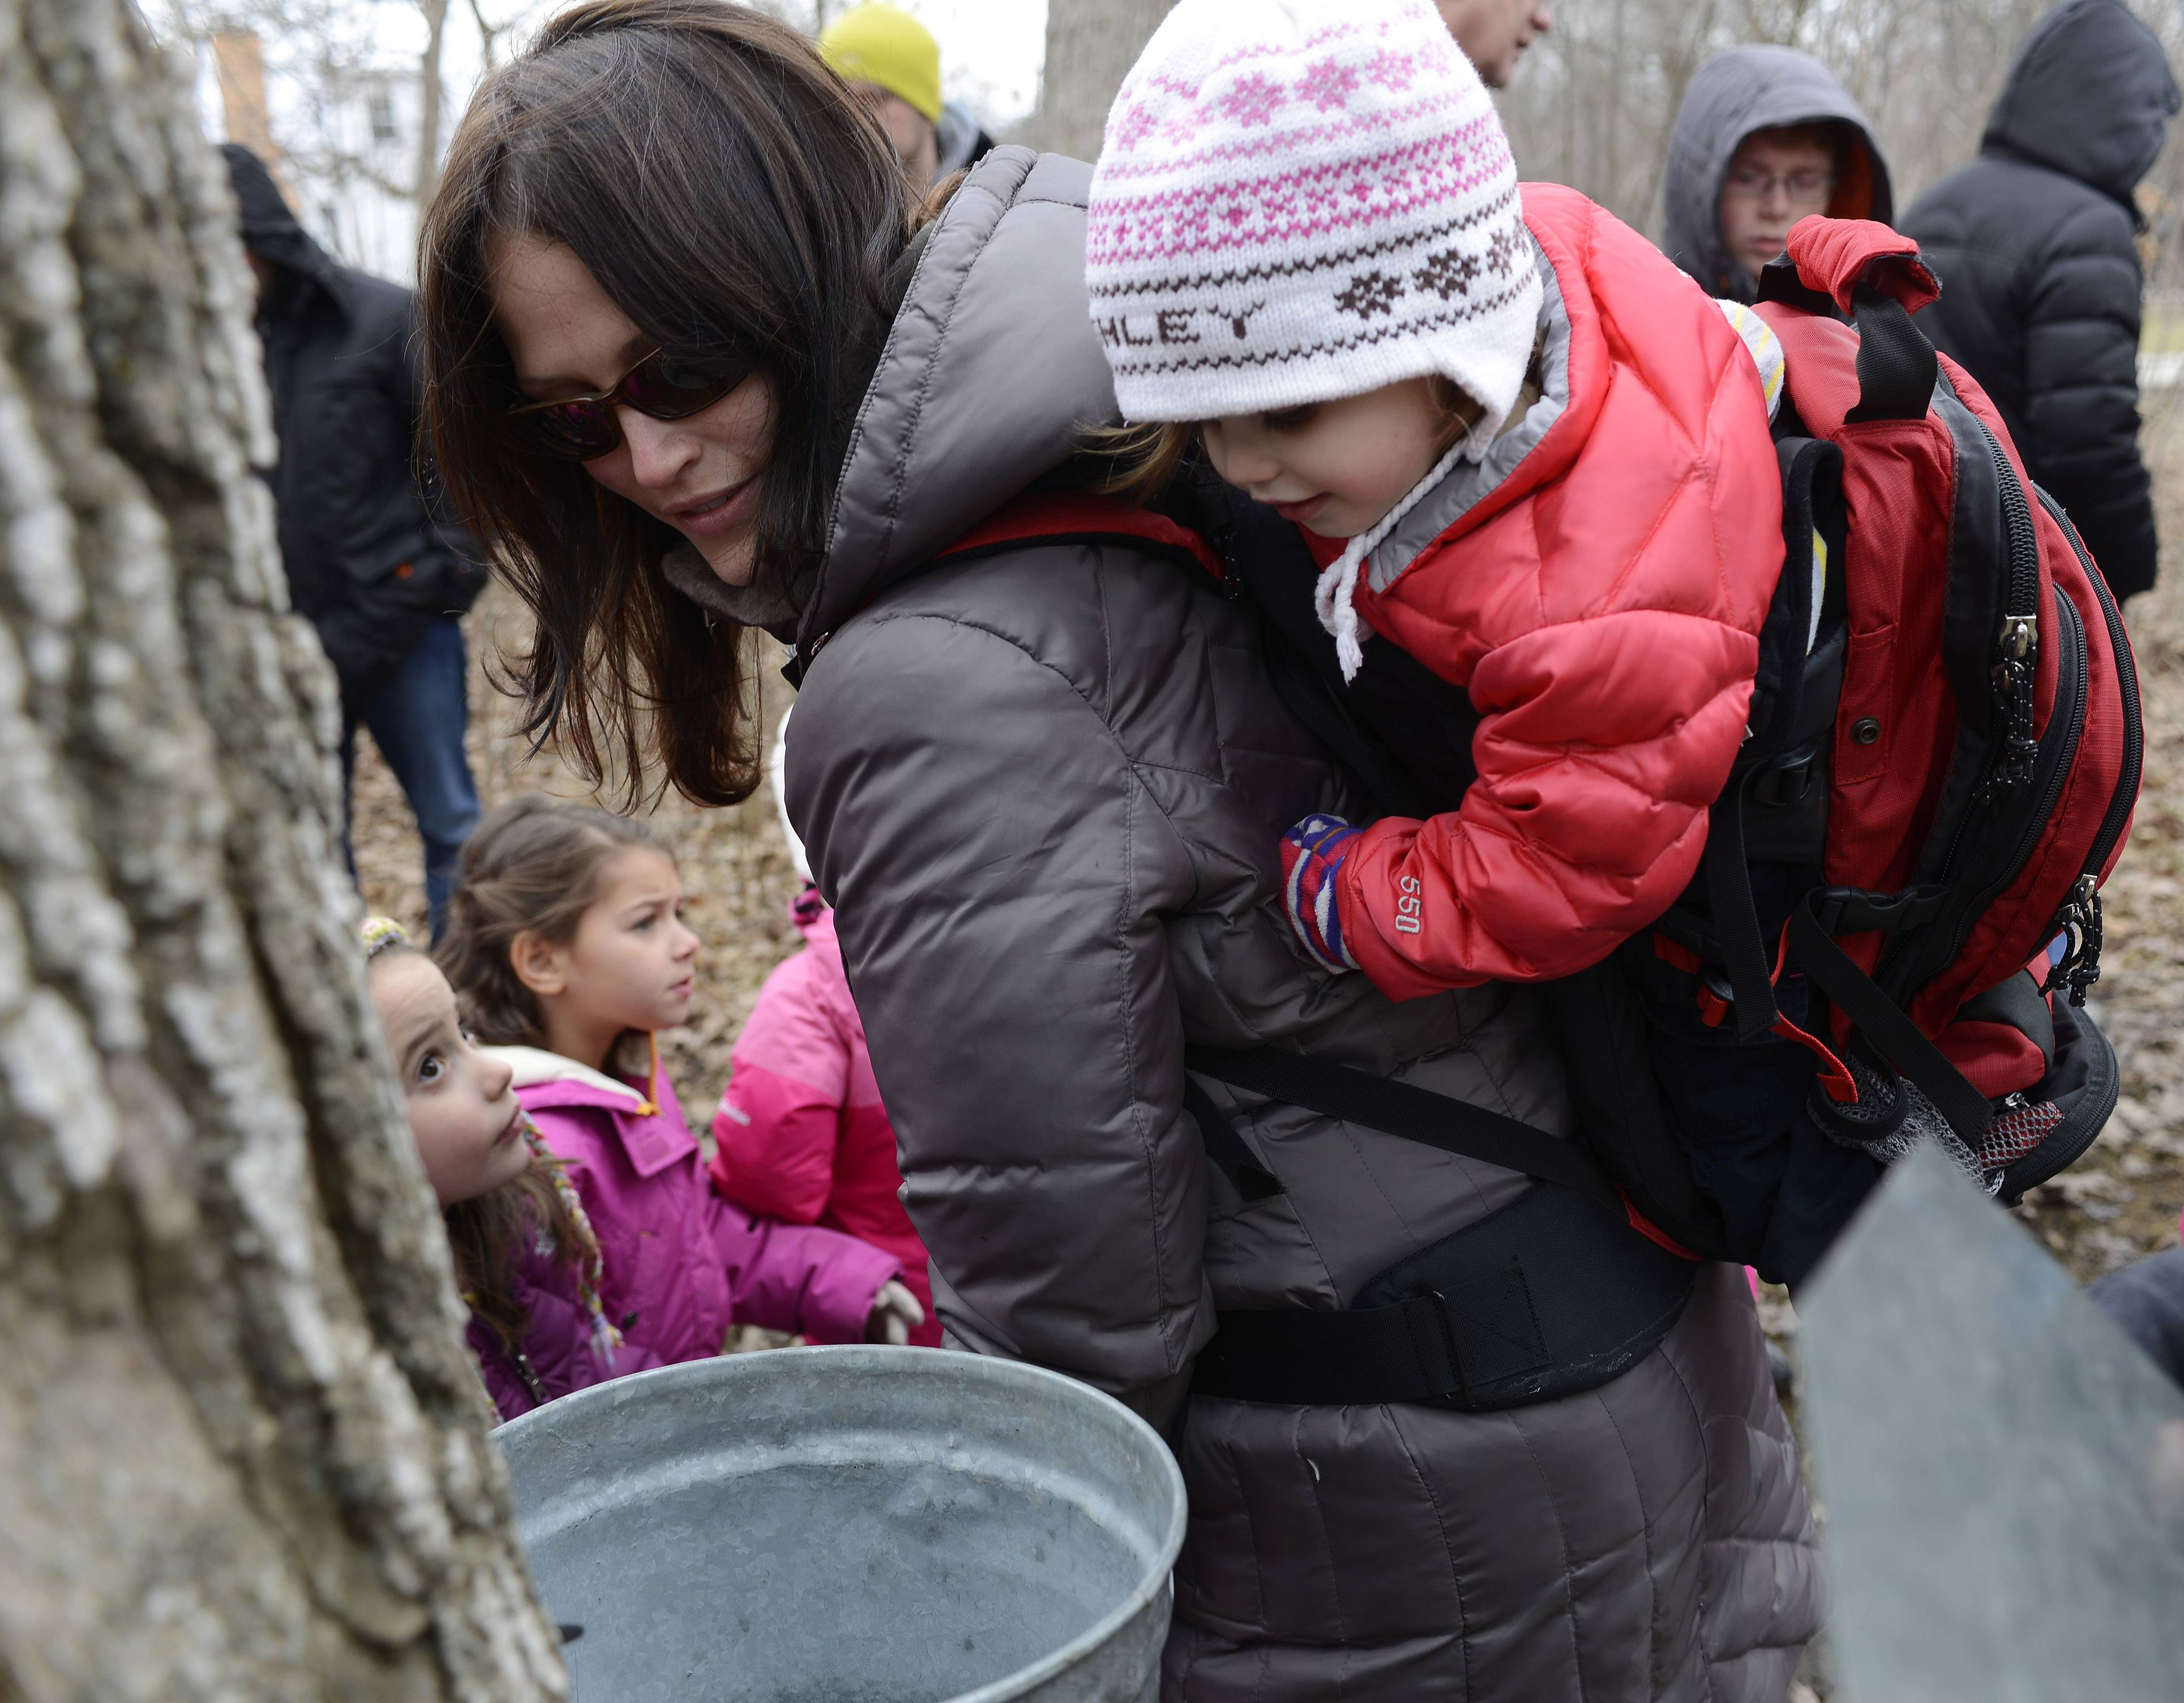 Malia Stern of Vernon Hills leans sideways a little so her daughter, Ashley, 2, can see sap being collected during the Maple Syrup Hike Saturday at the Lake County Preserve Ryerson Woods Conservation Area near Lincolnshire.